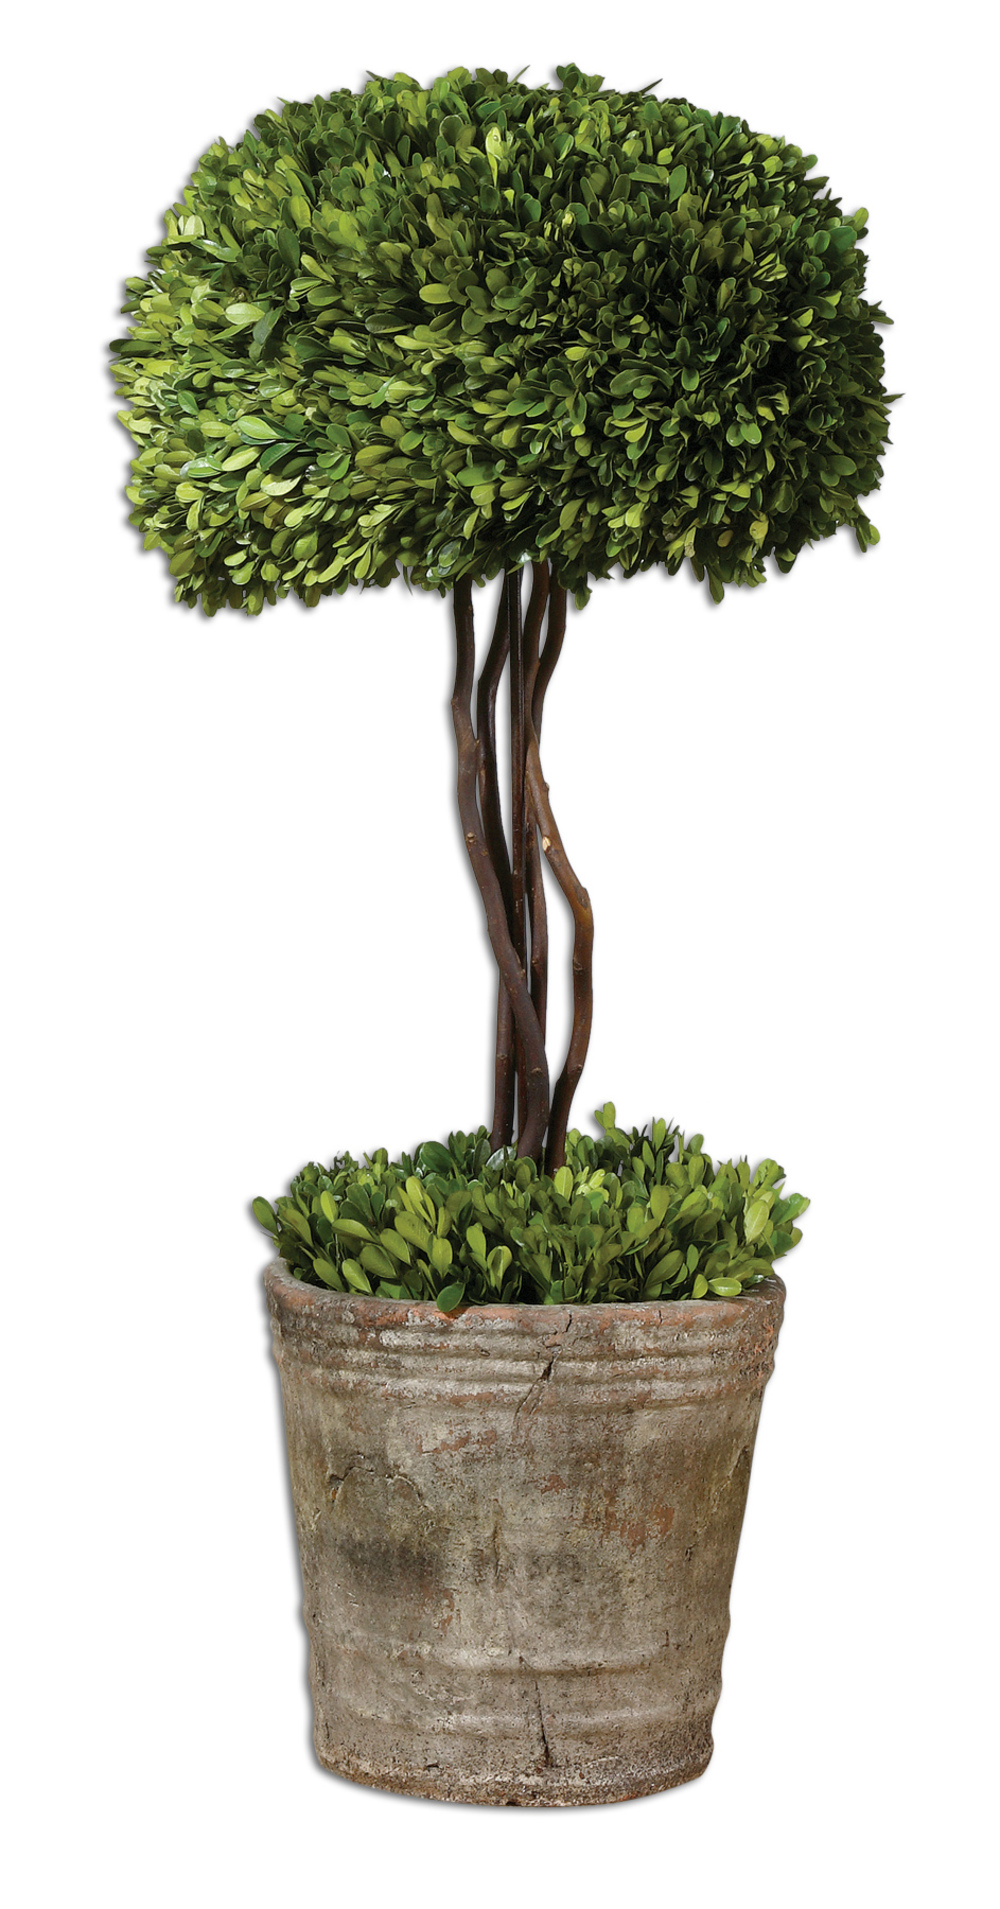 Uttermost Company - Preserved Boxwood, Tree Topiary